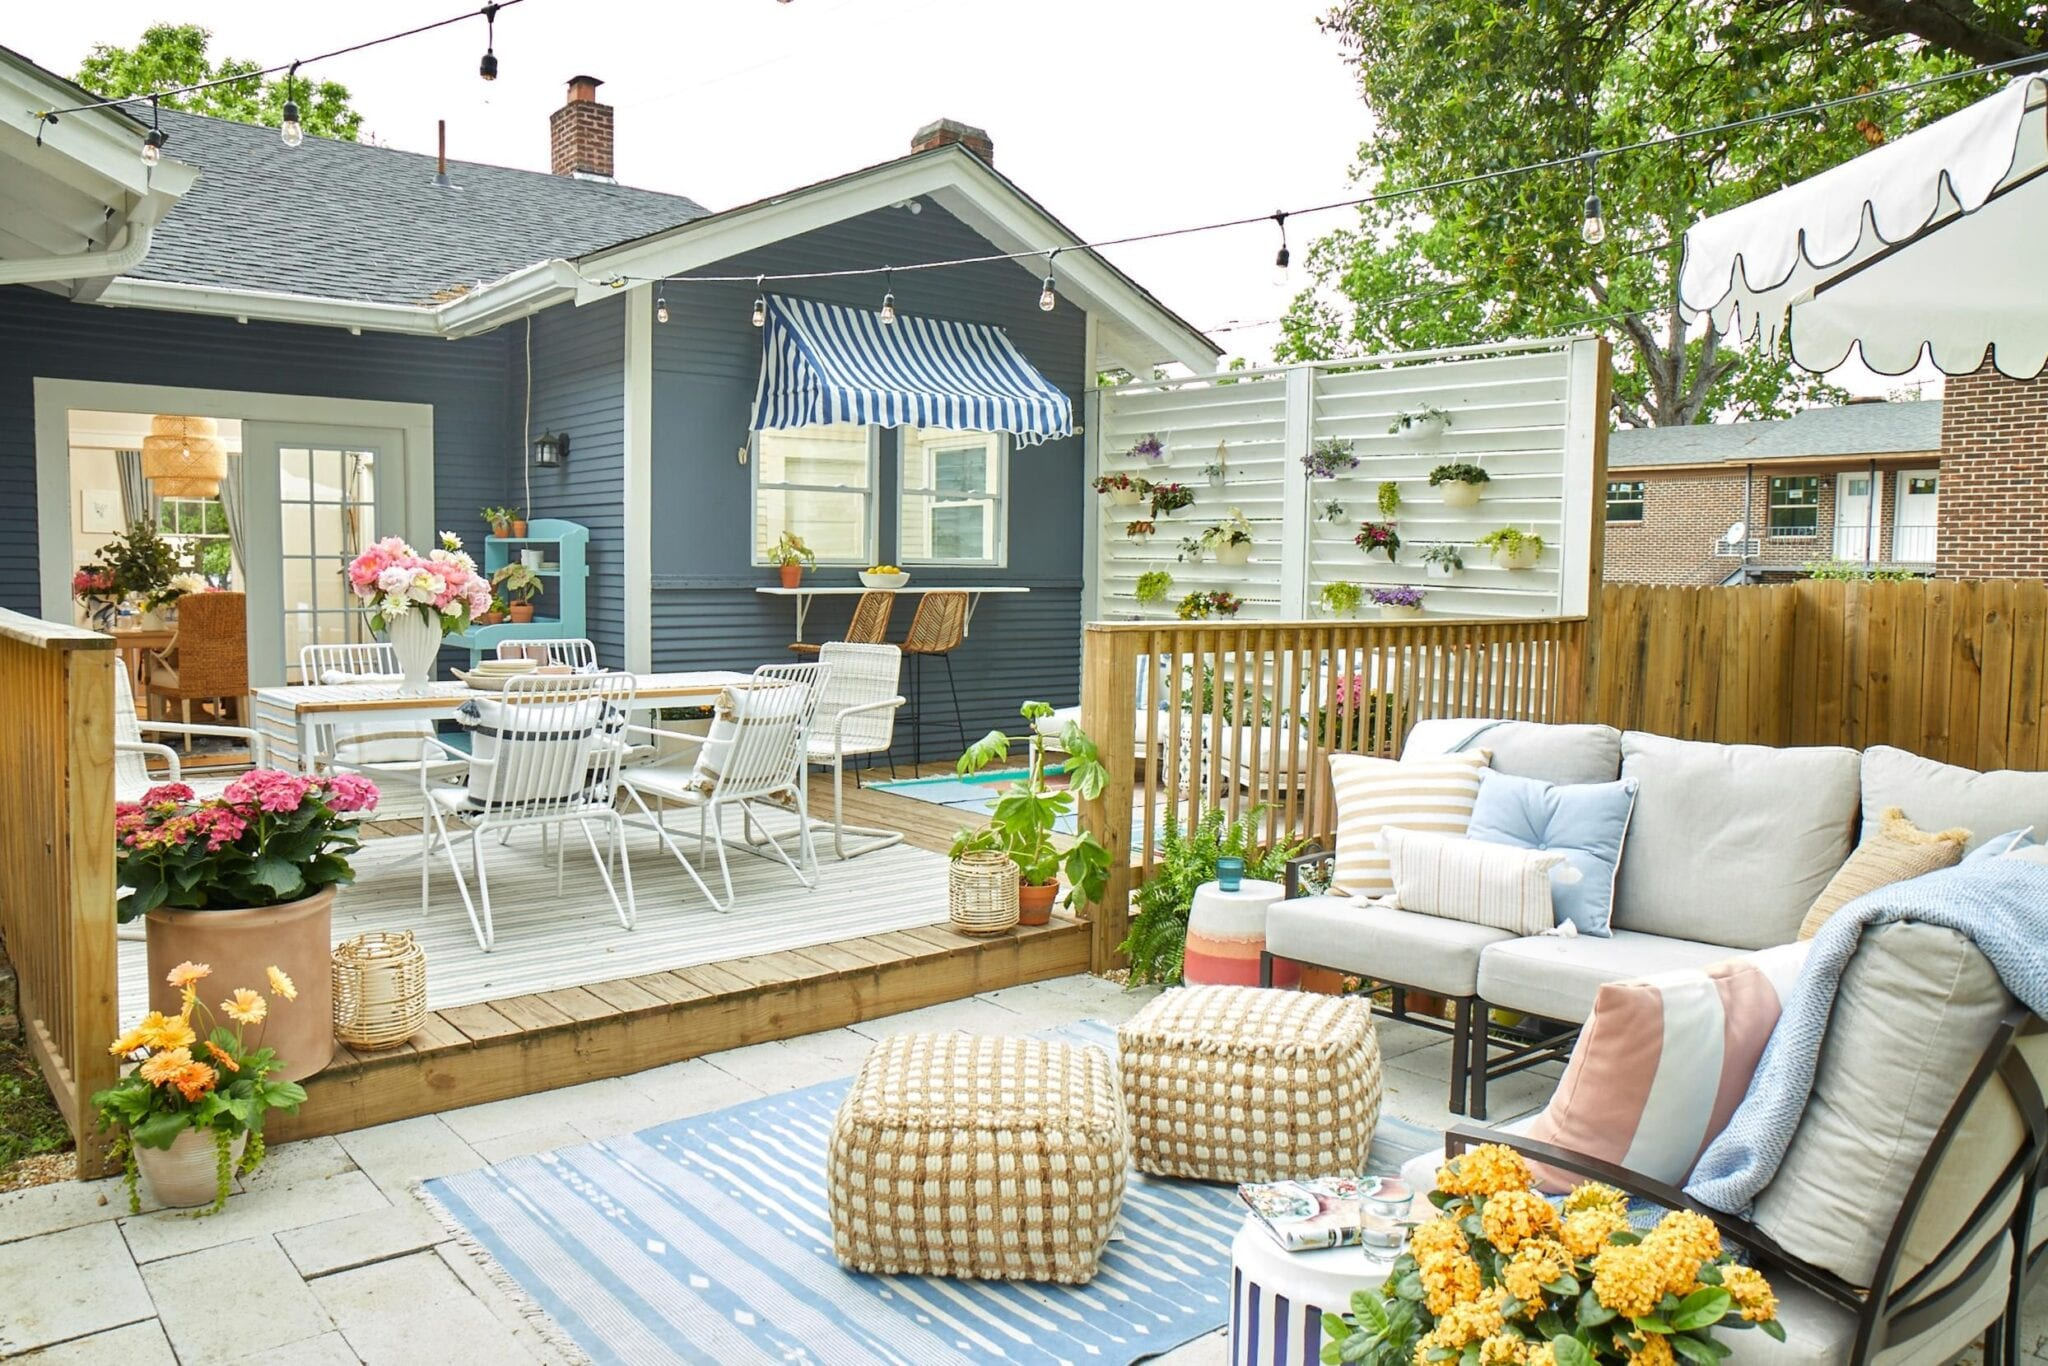 5 Ideas to Upgrade Your Outdoor Patio Experience